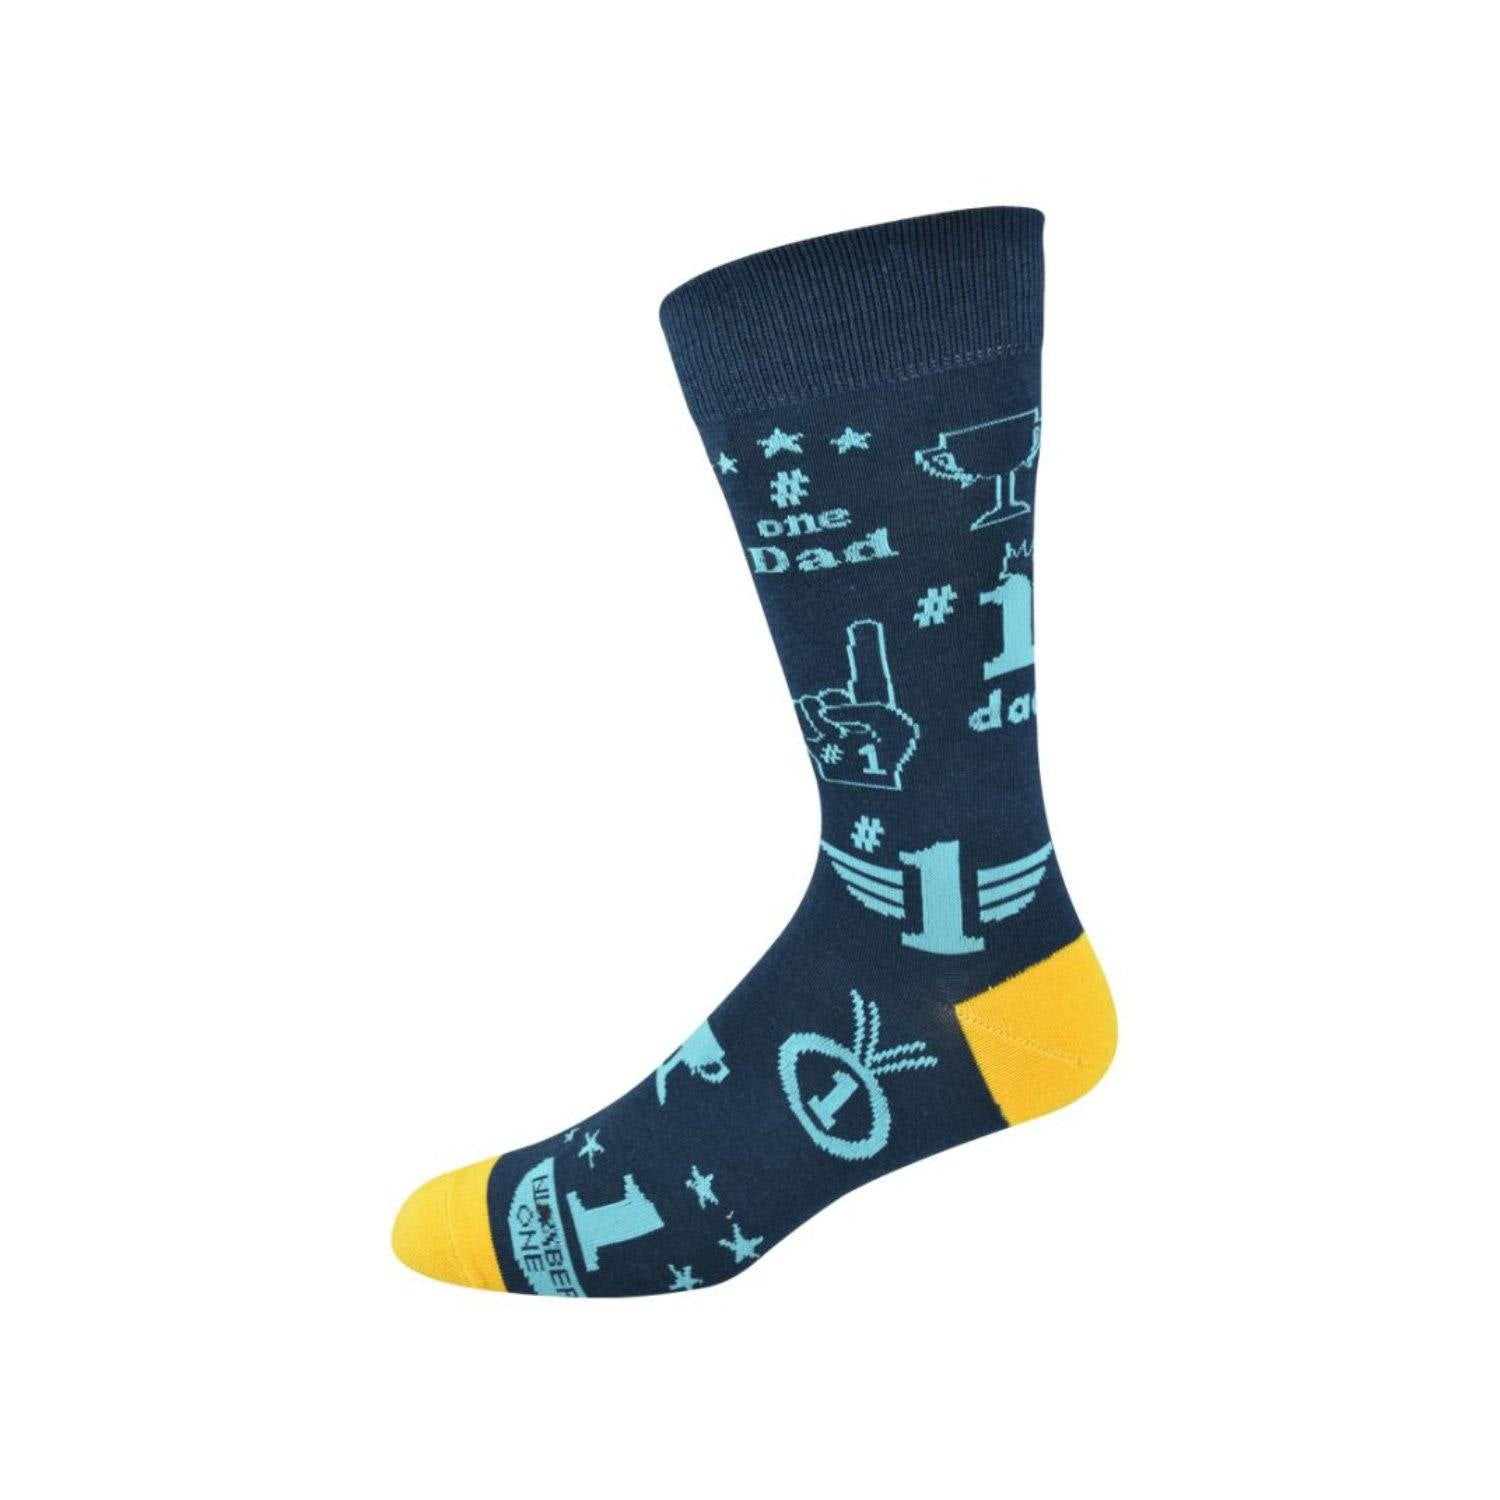 Bamboozld Men's Bamboo Socks - #1 Dad